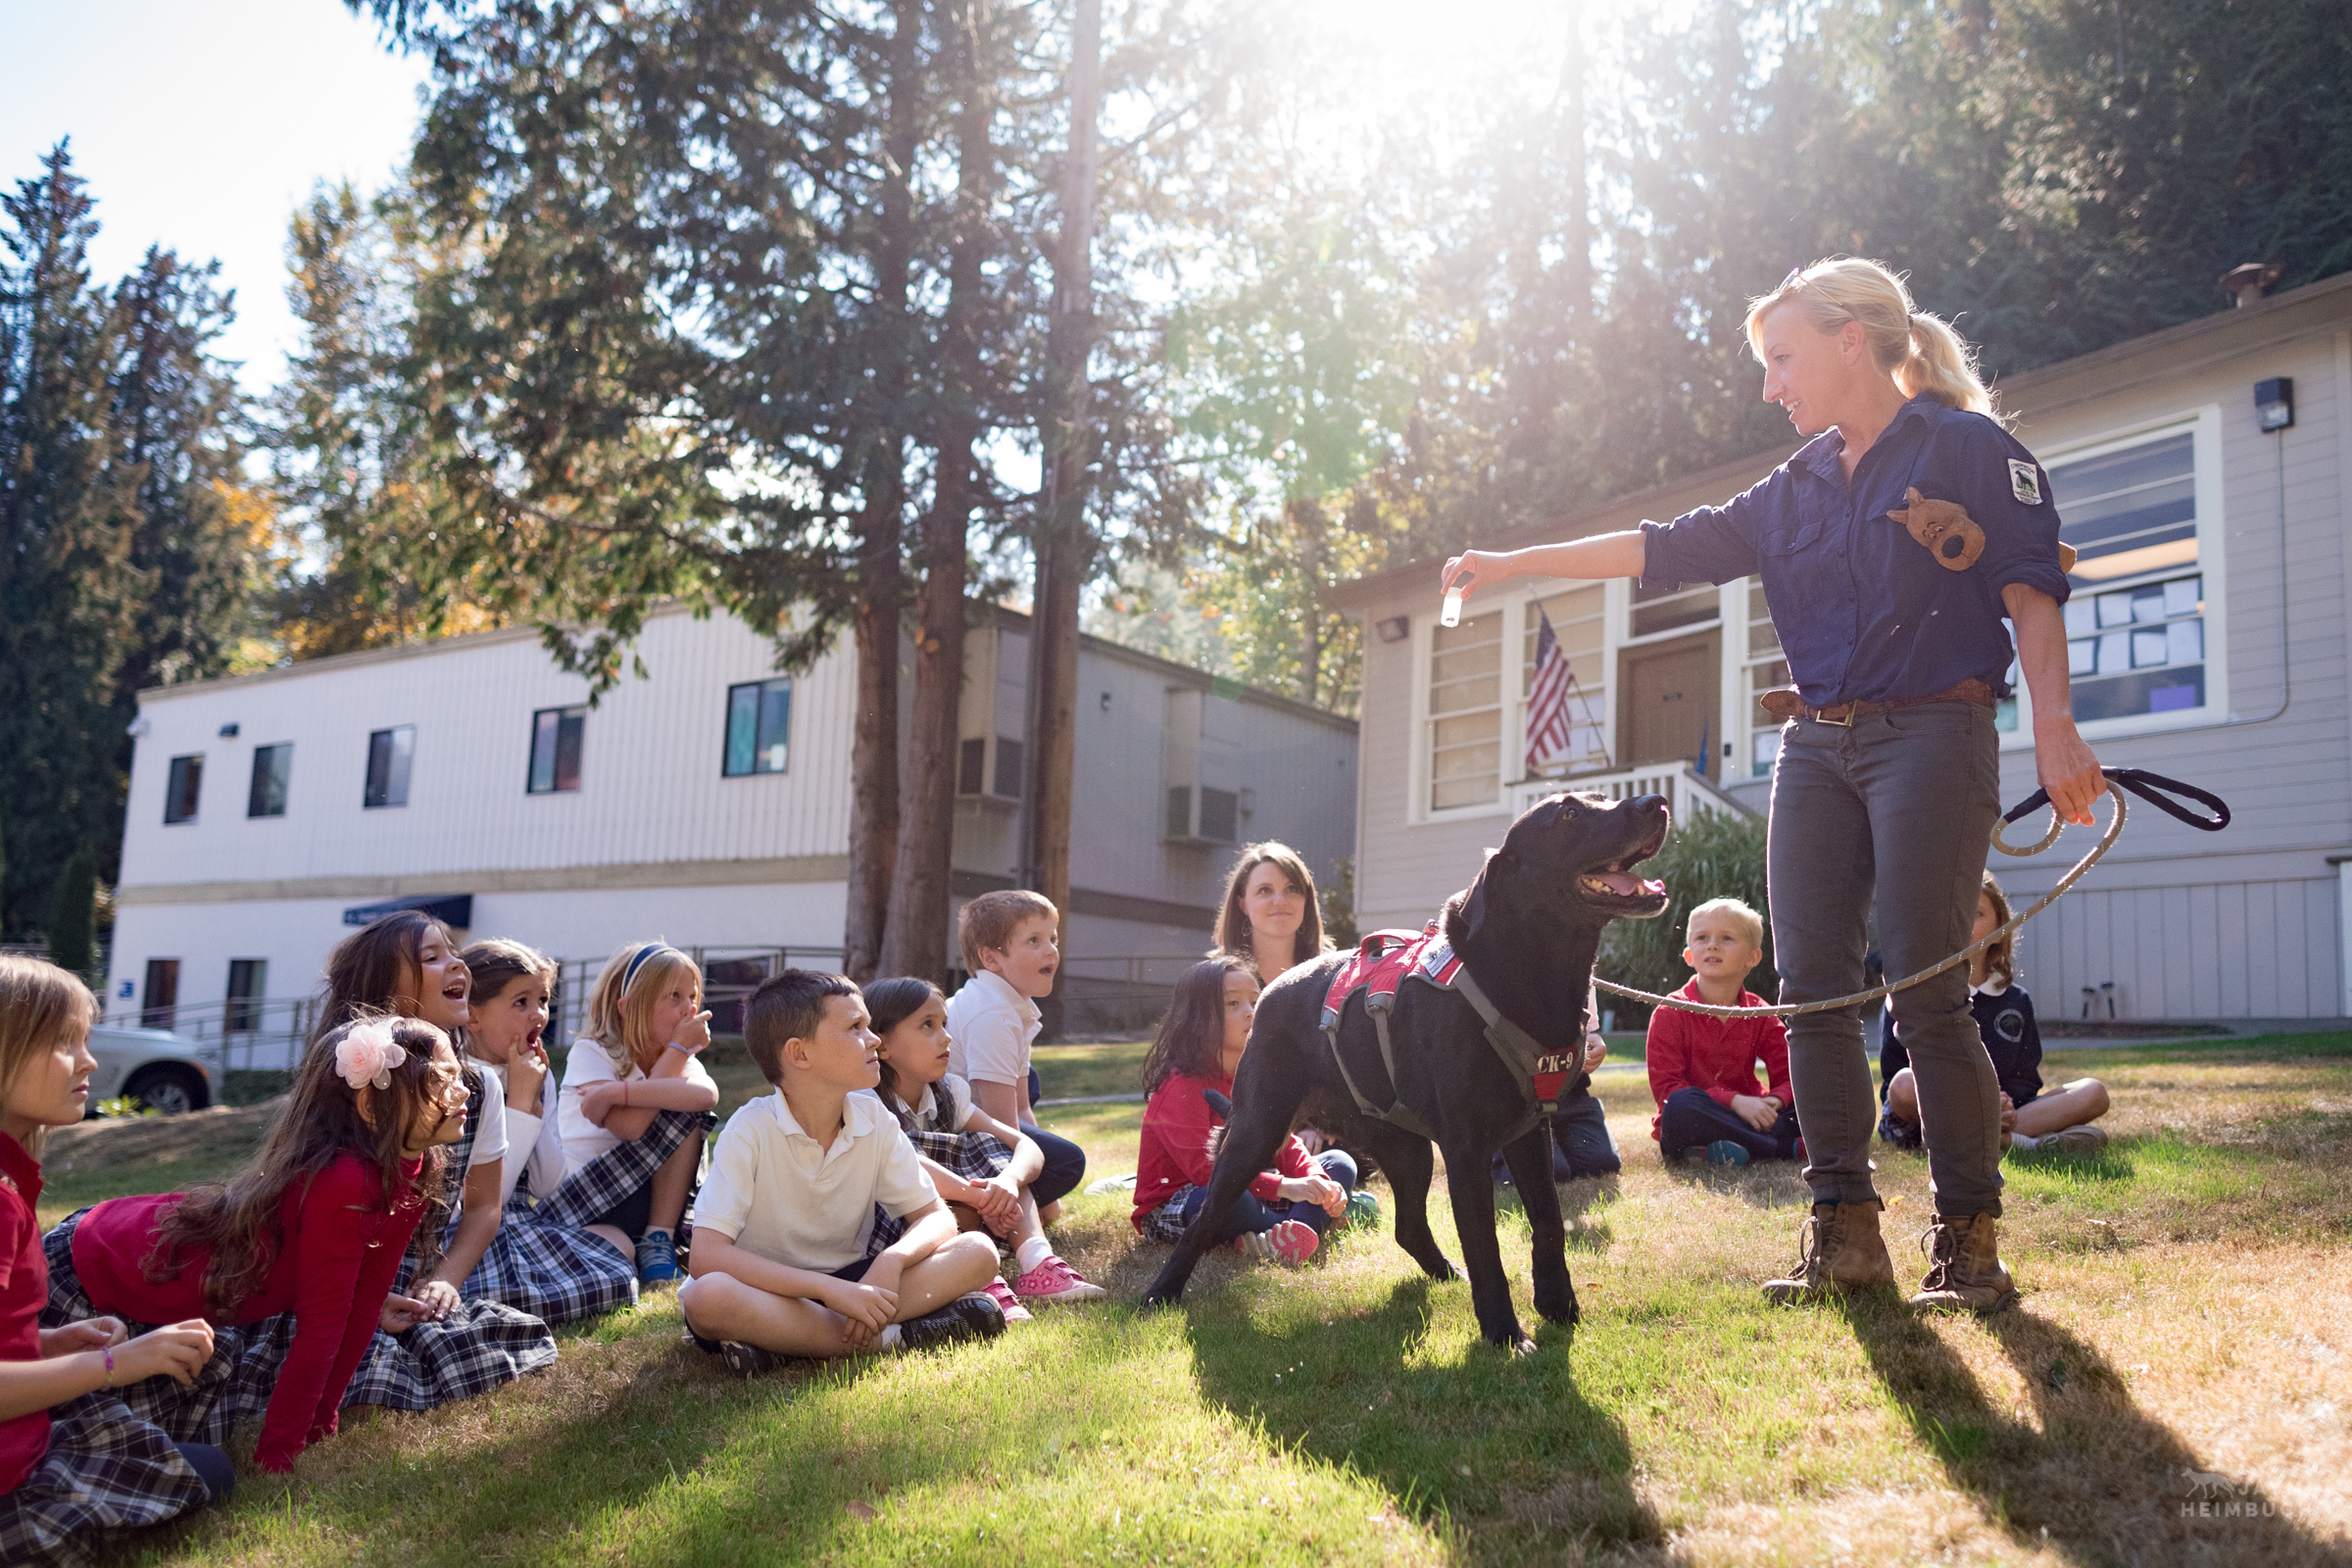 Field technician Julianne Ubigau teaches a classroom of second grade students about the work of Conservation Canines, a program with University of Washington's Center for Conservation Biology.